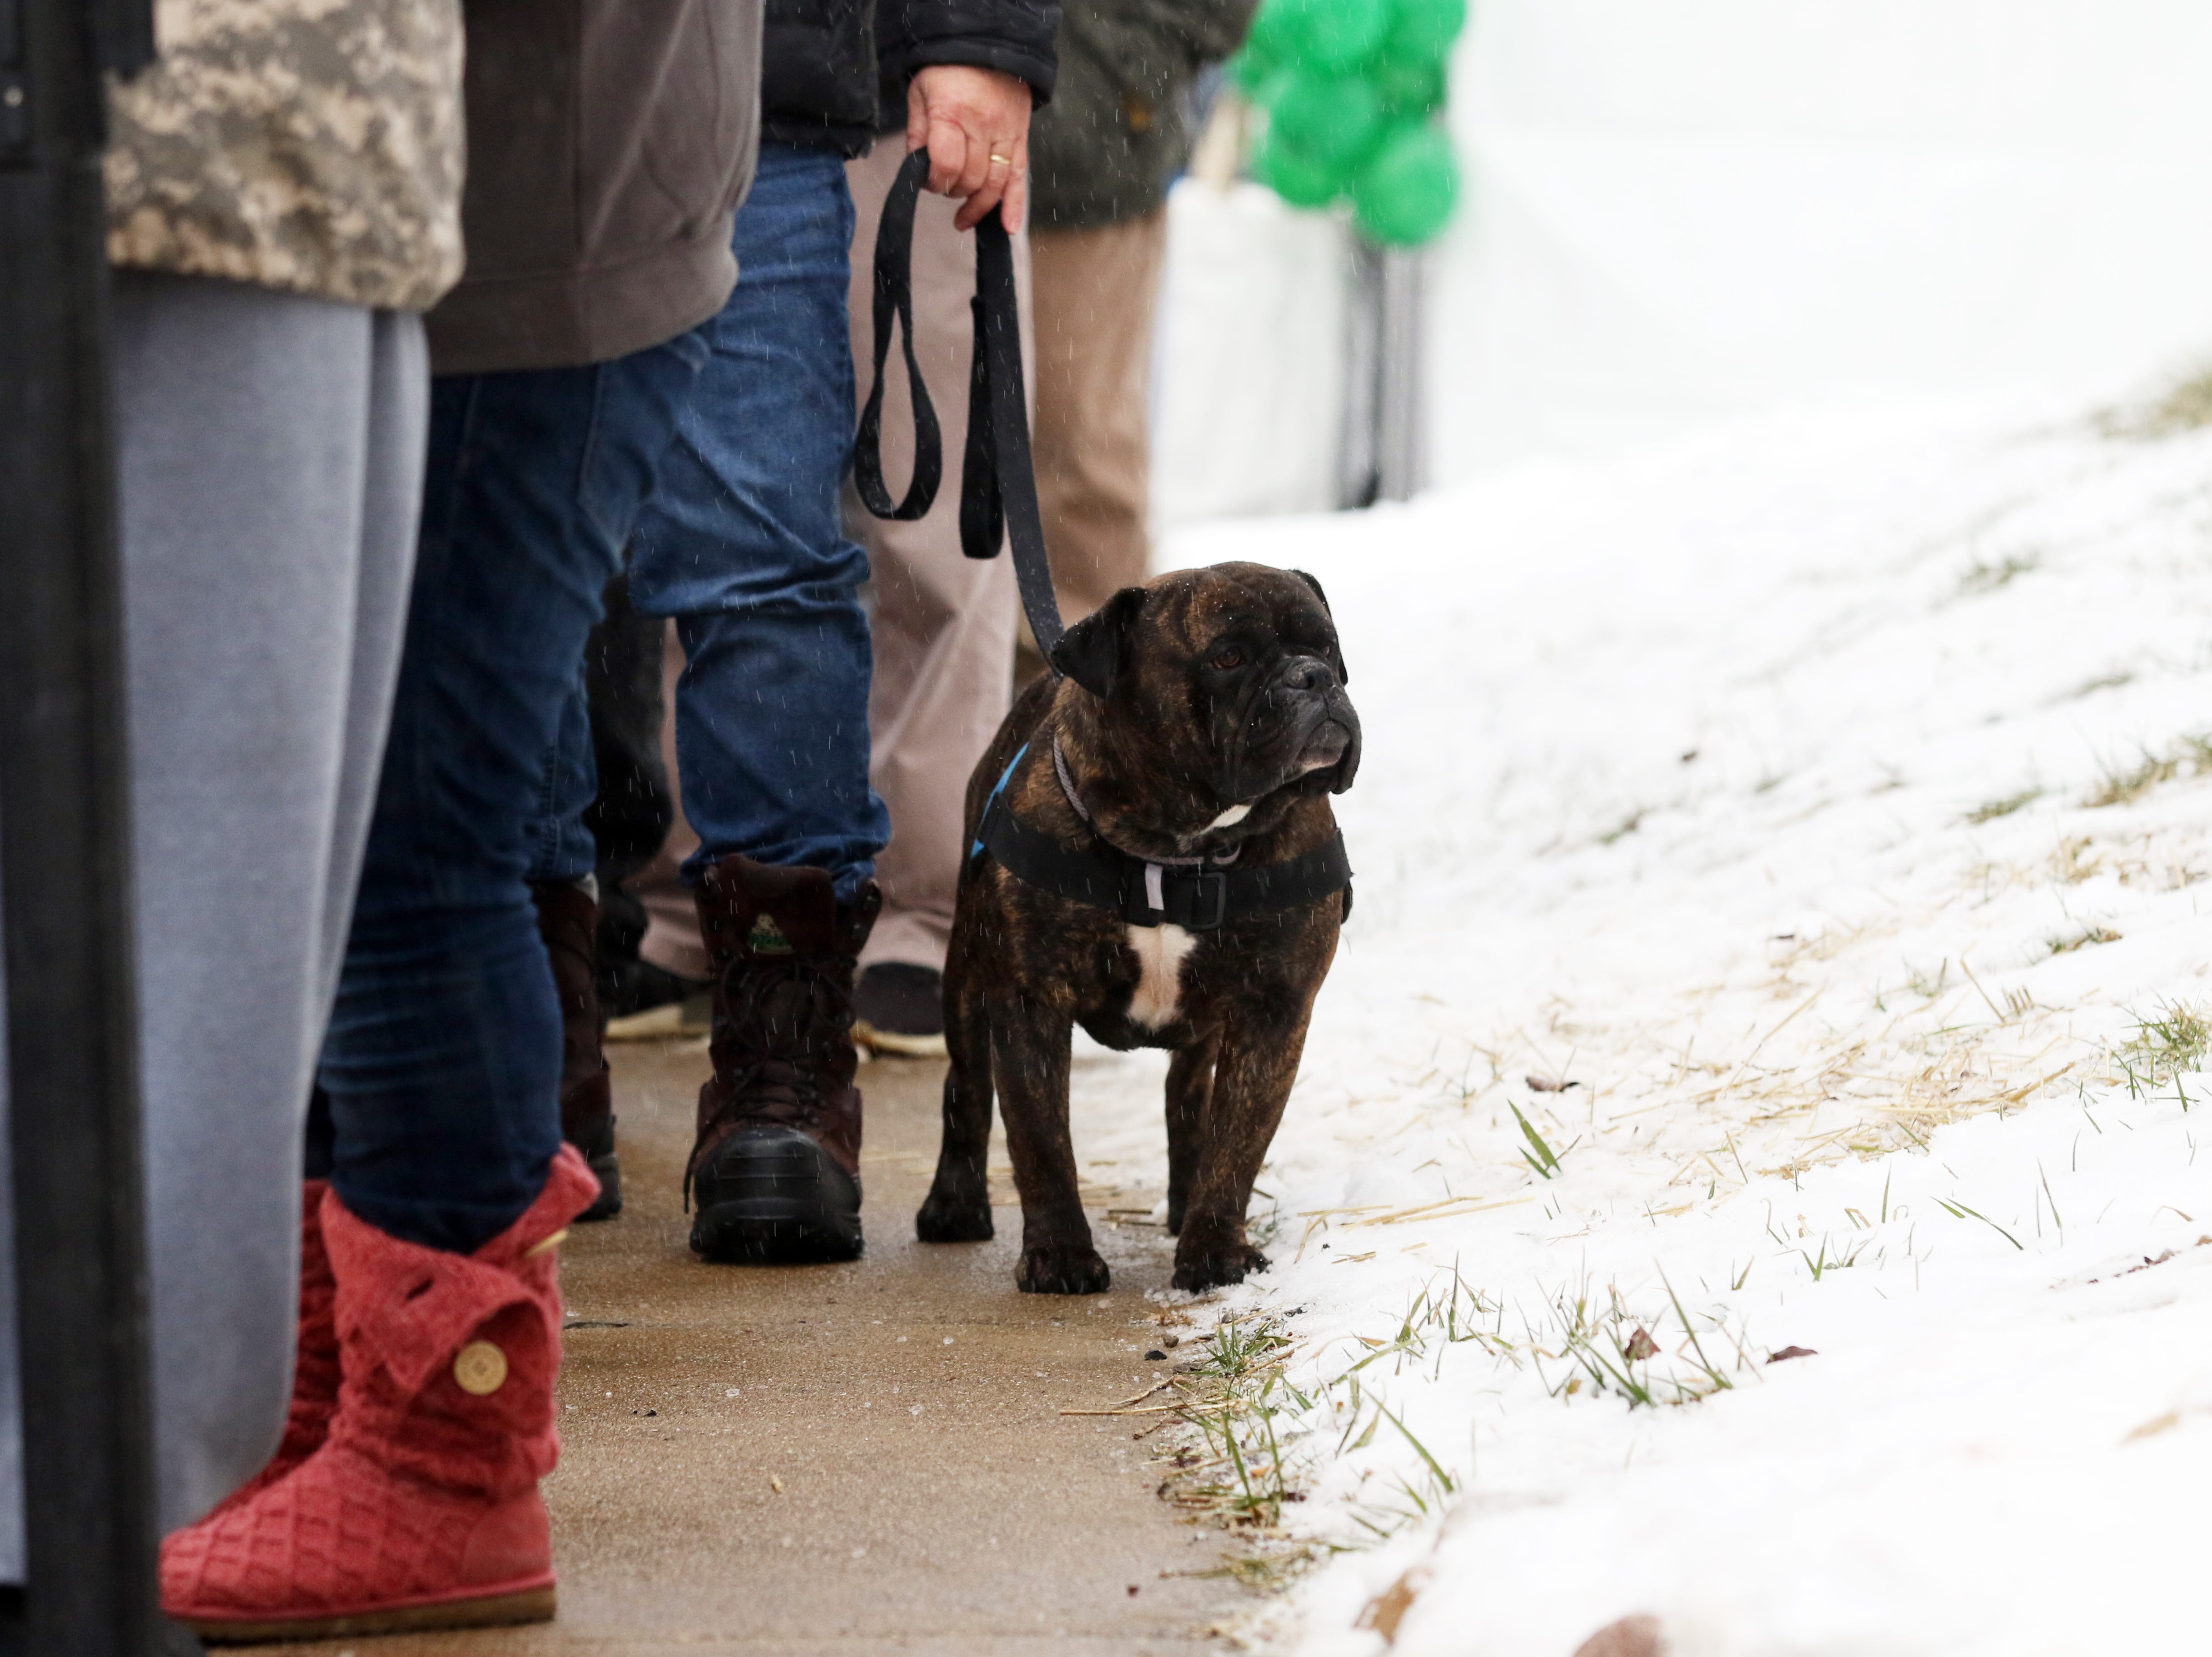 Dave William's service dog Chains waits in line outside the CY+ Dispensary in Wintersville on Wednesday.